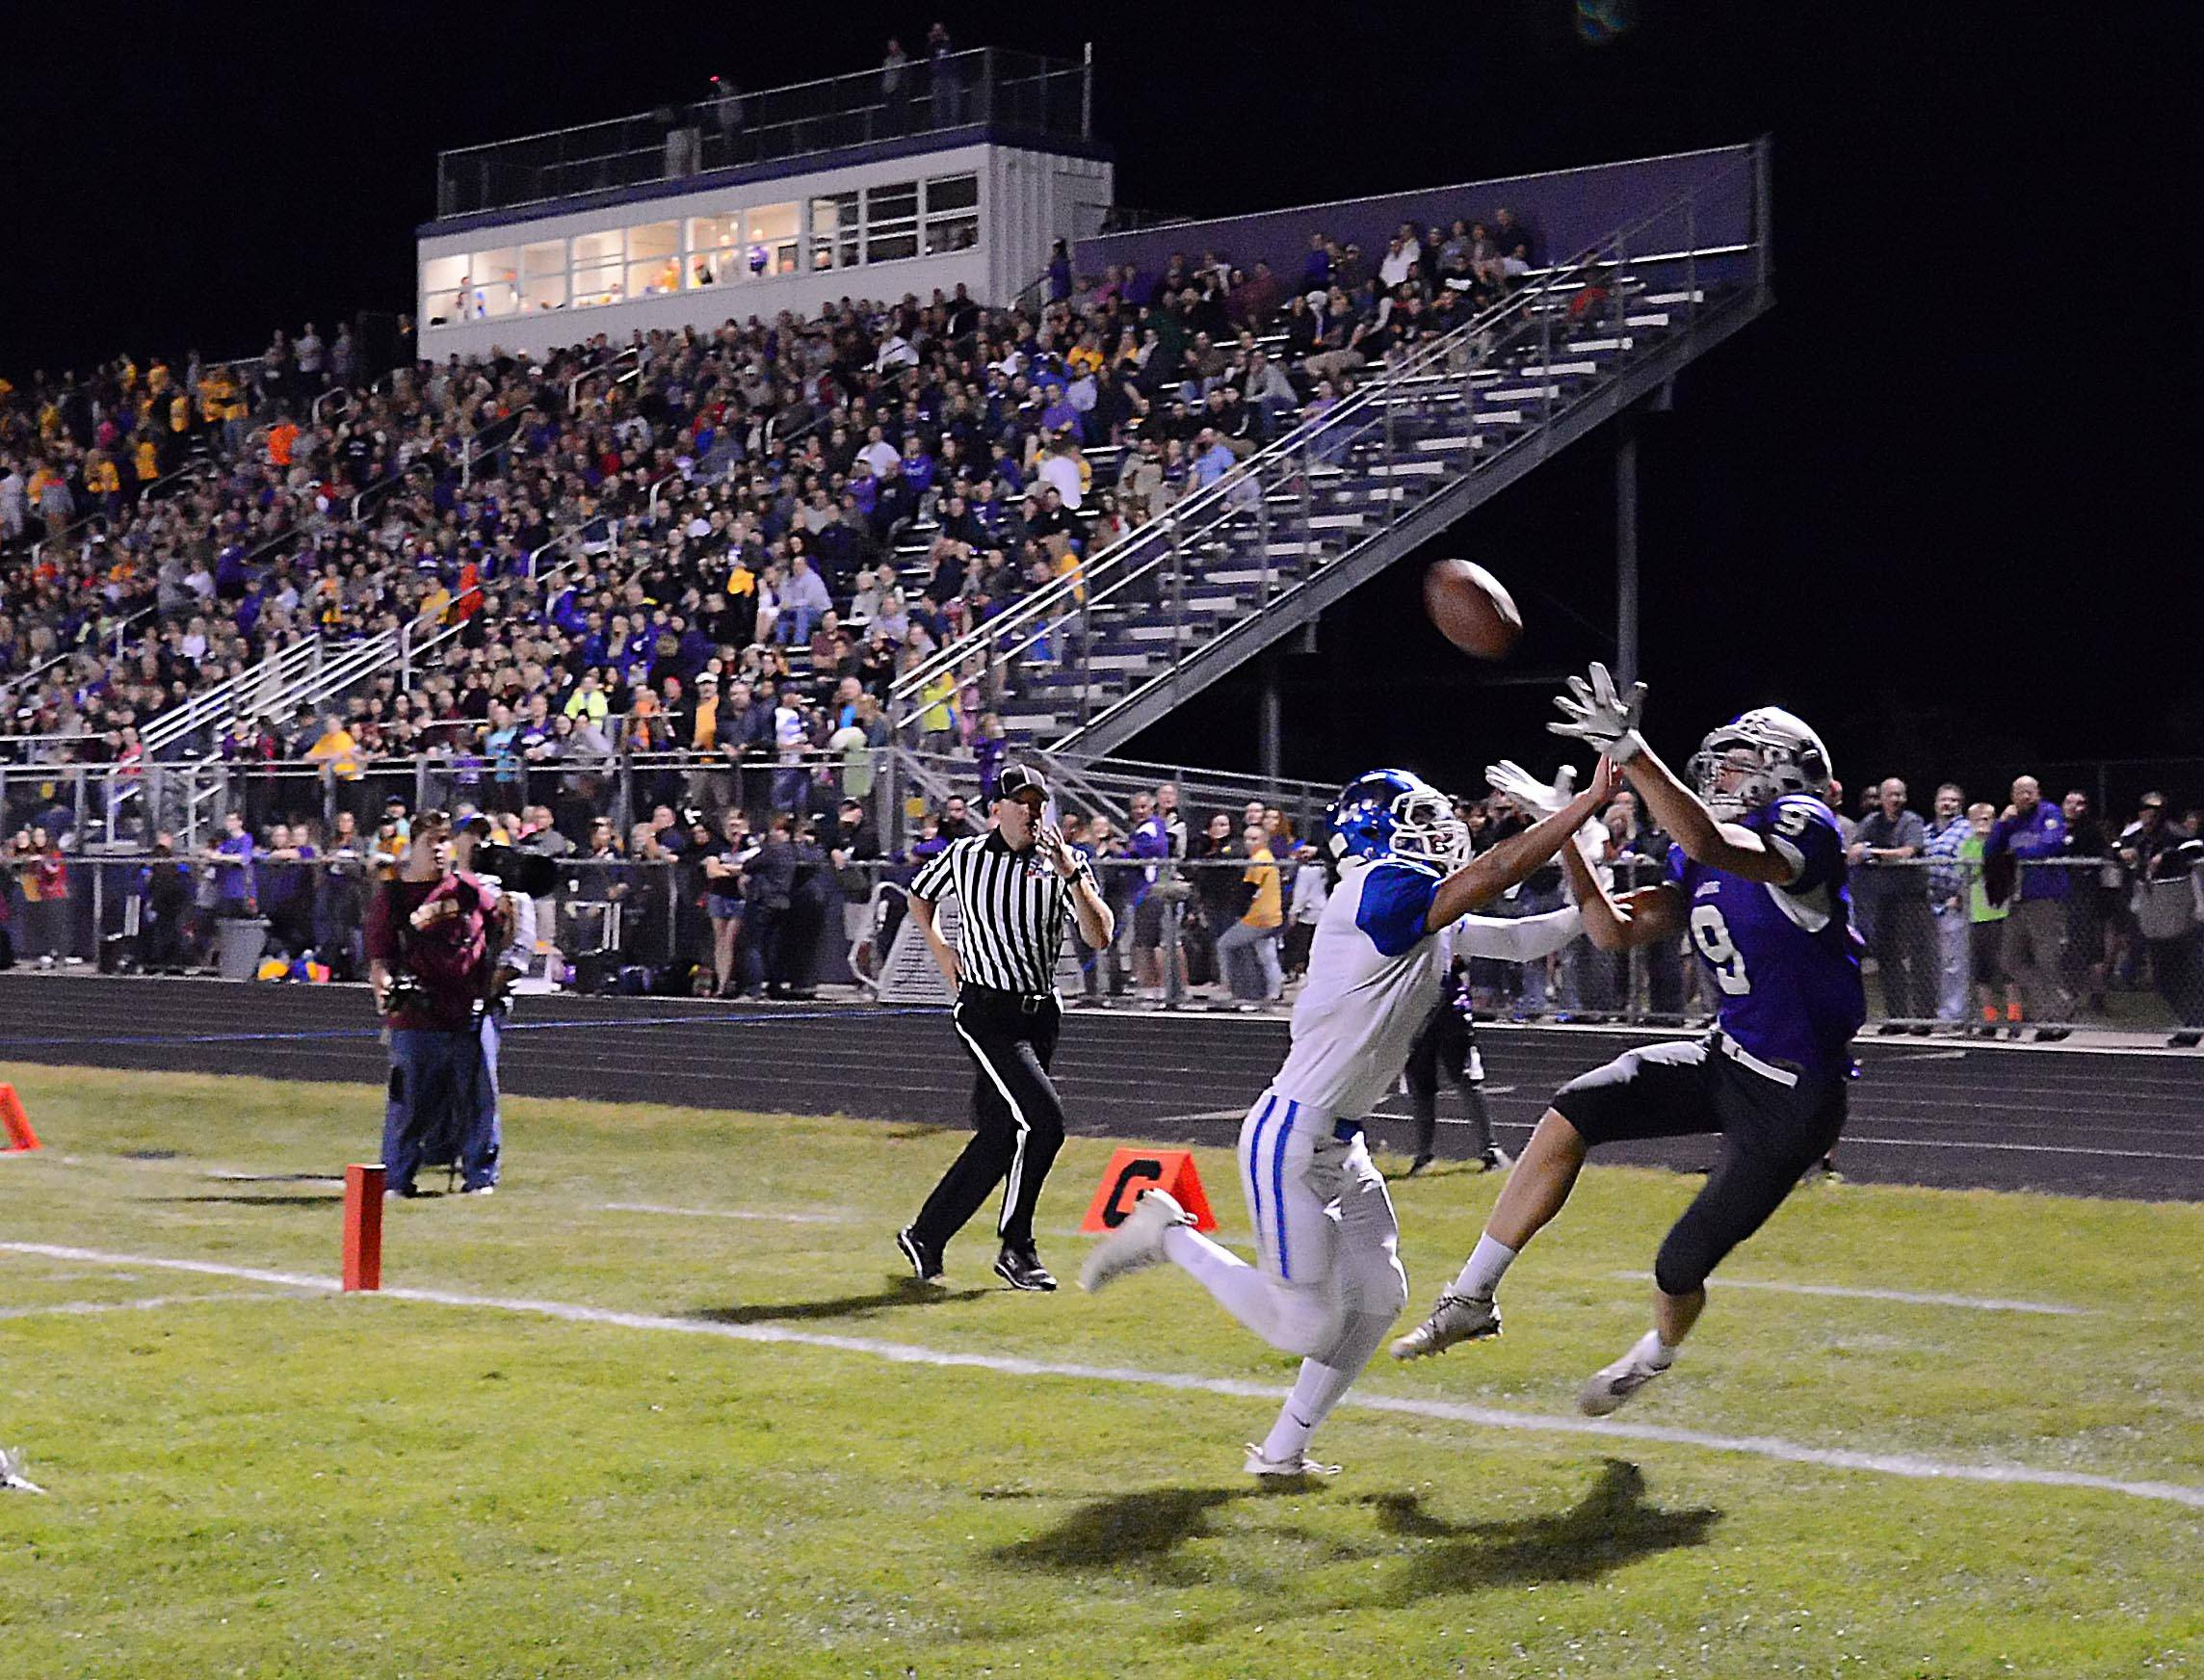 Burlington Central's Abraham Alvarez commits pass interference against Hampshire's Erik Starrenburg in the corner of the end zone late in the first half Friday in Hampshire.